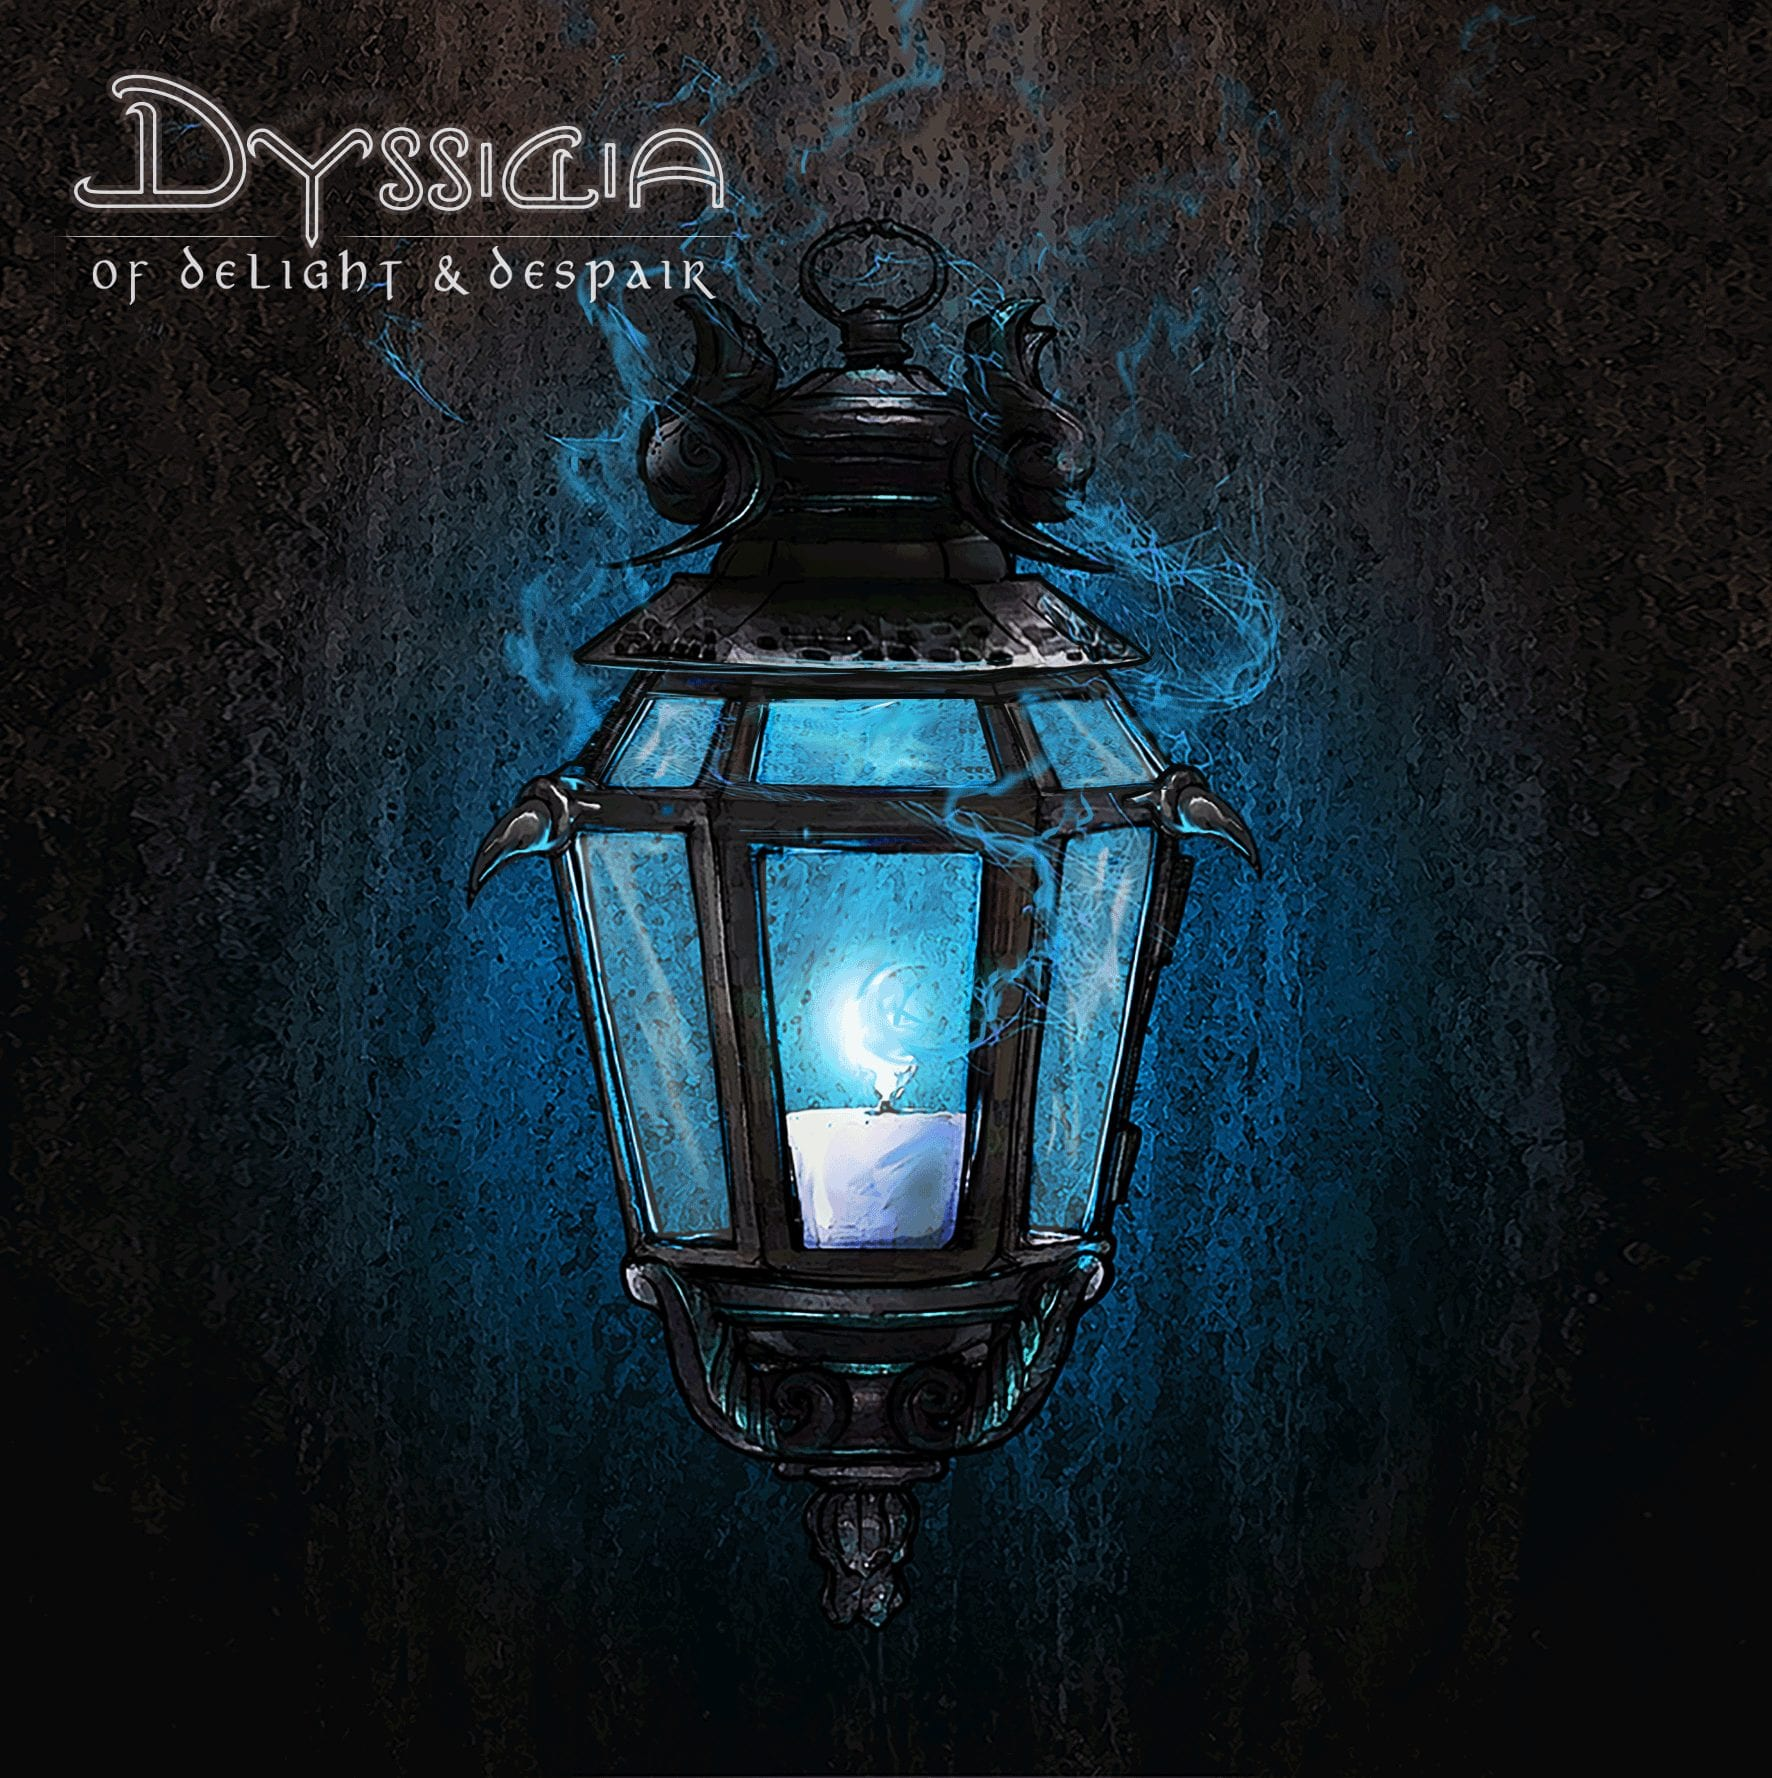 Dyssidia - Of Delight Despair